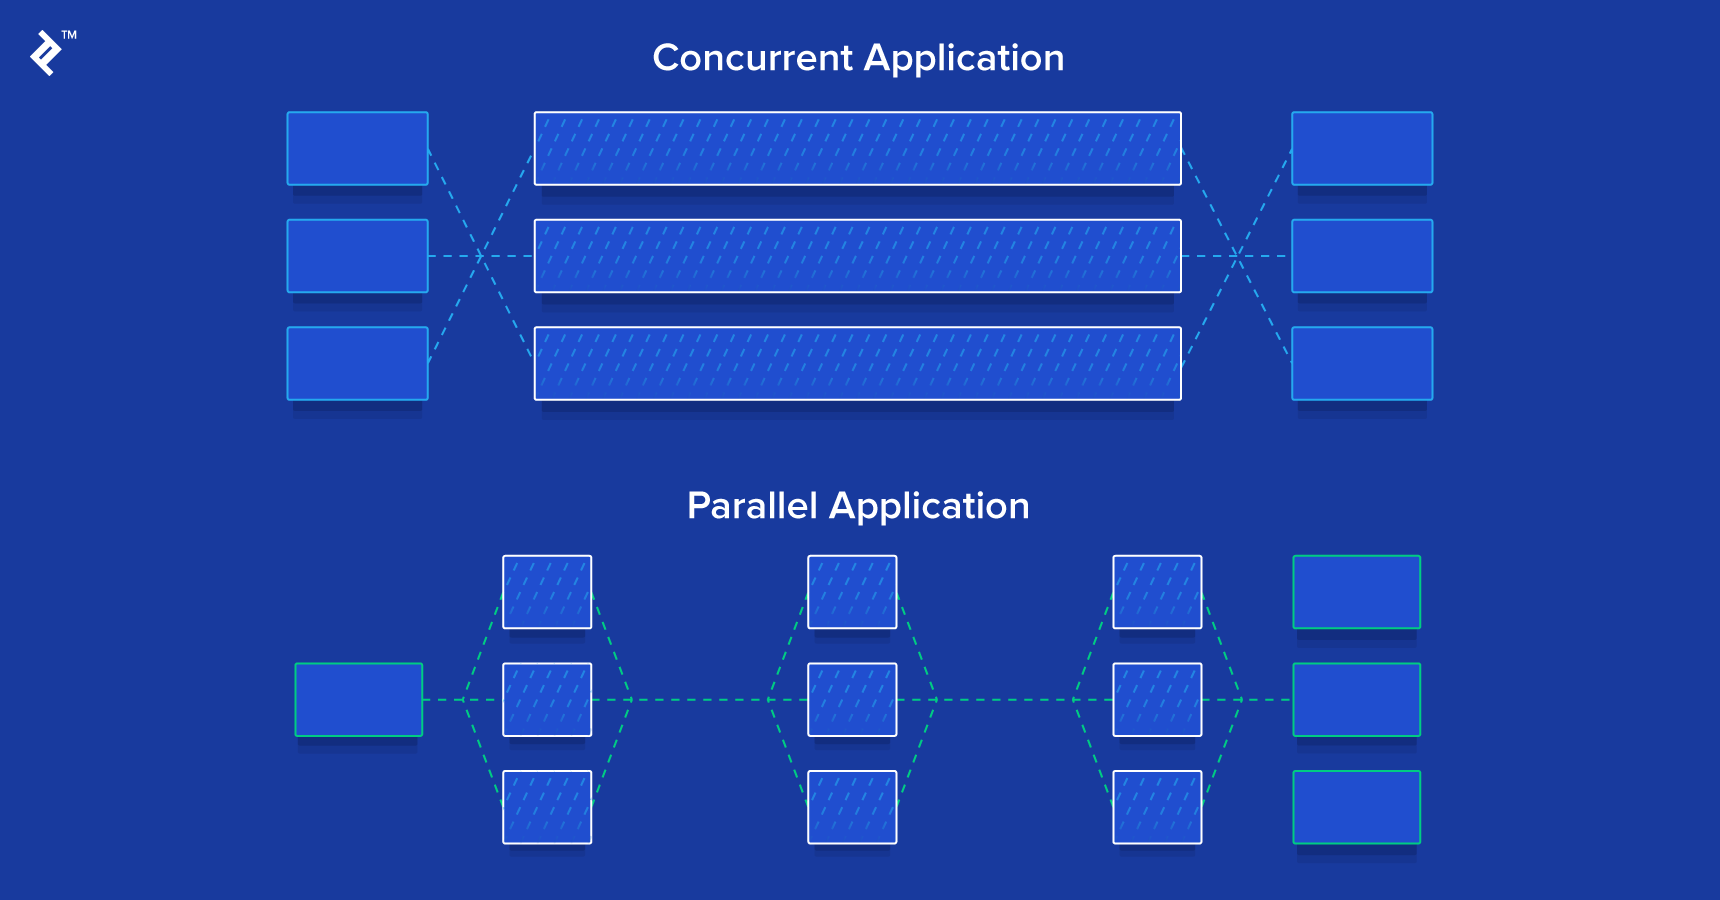 Ruby Concurrency and Parallelism in Multithreaded Apps: A